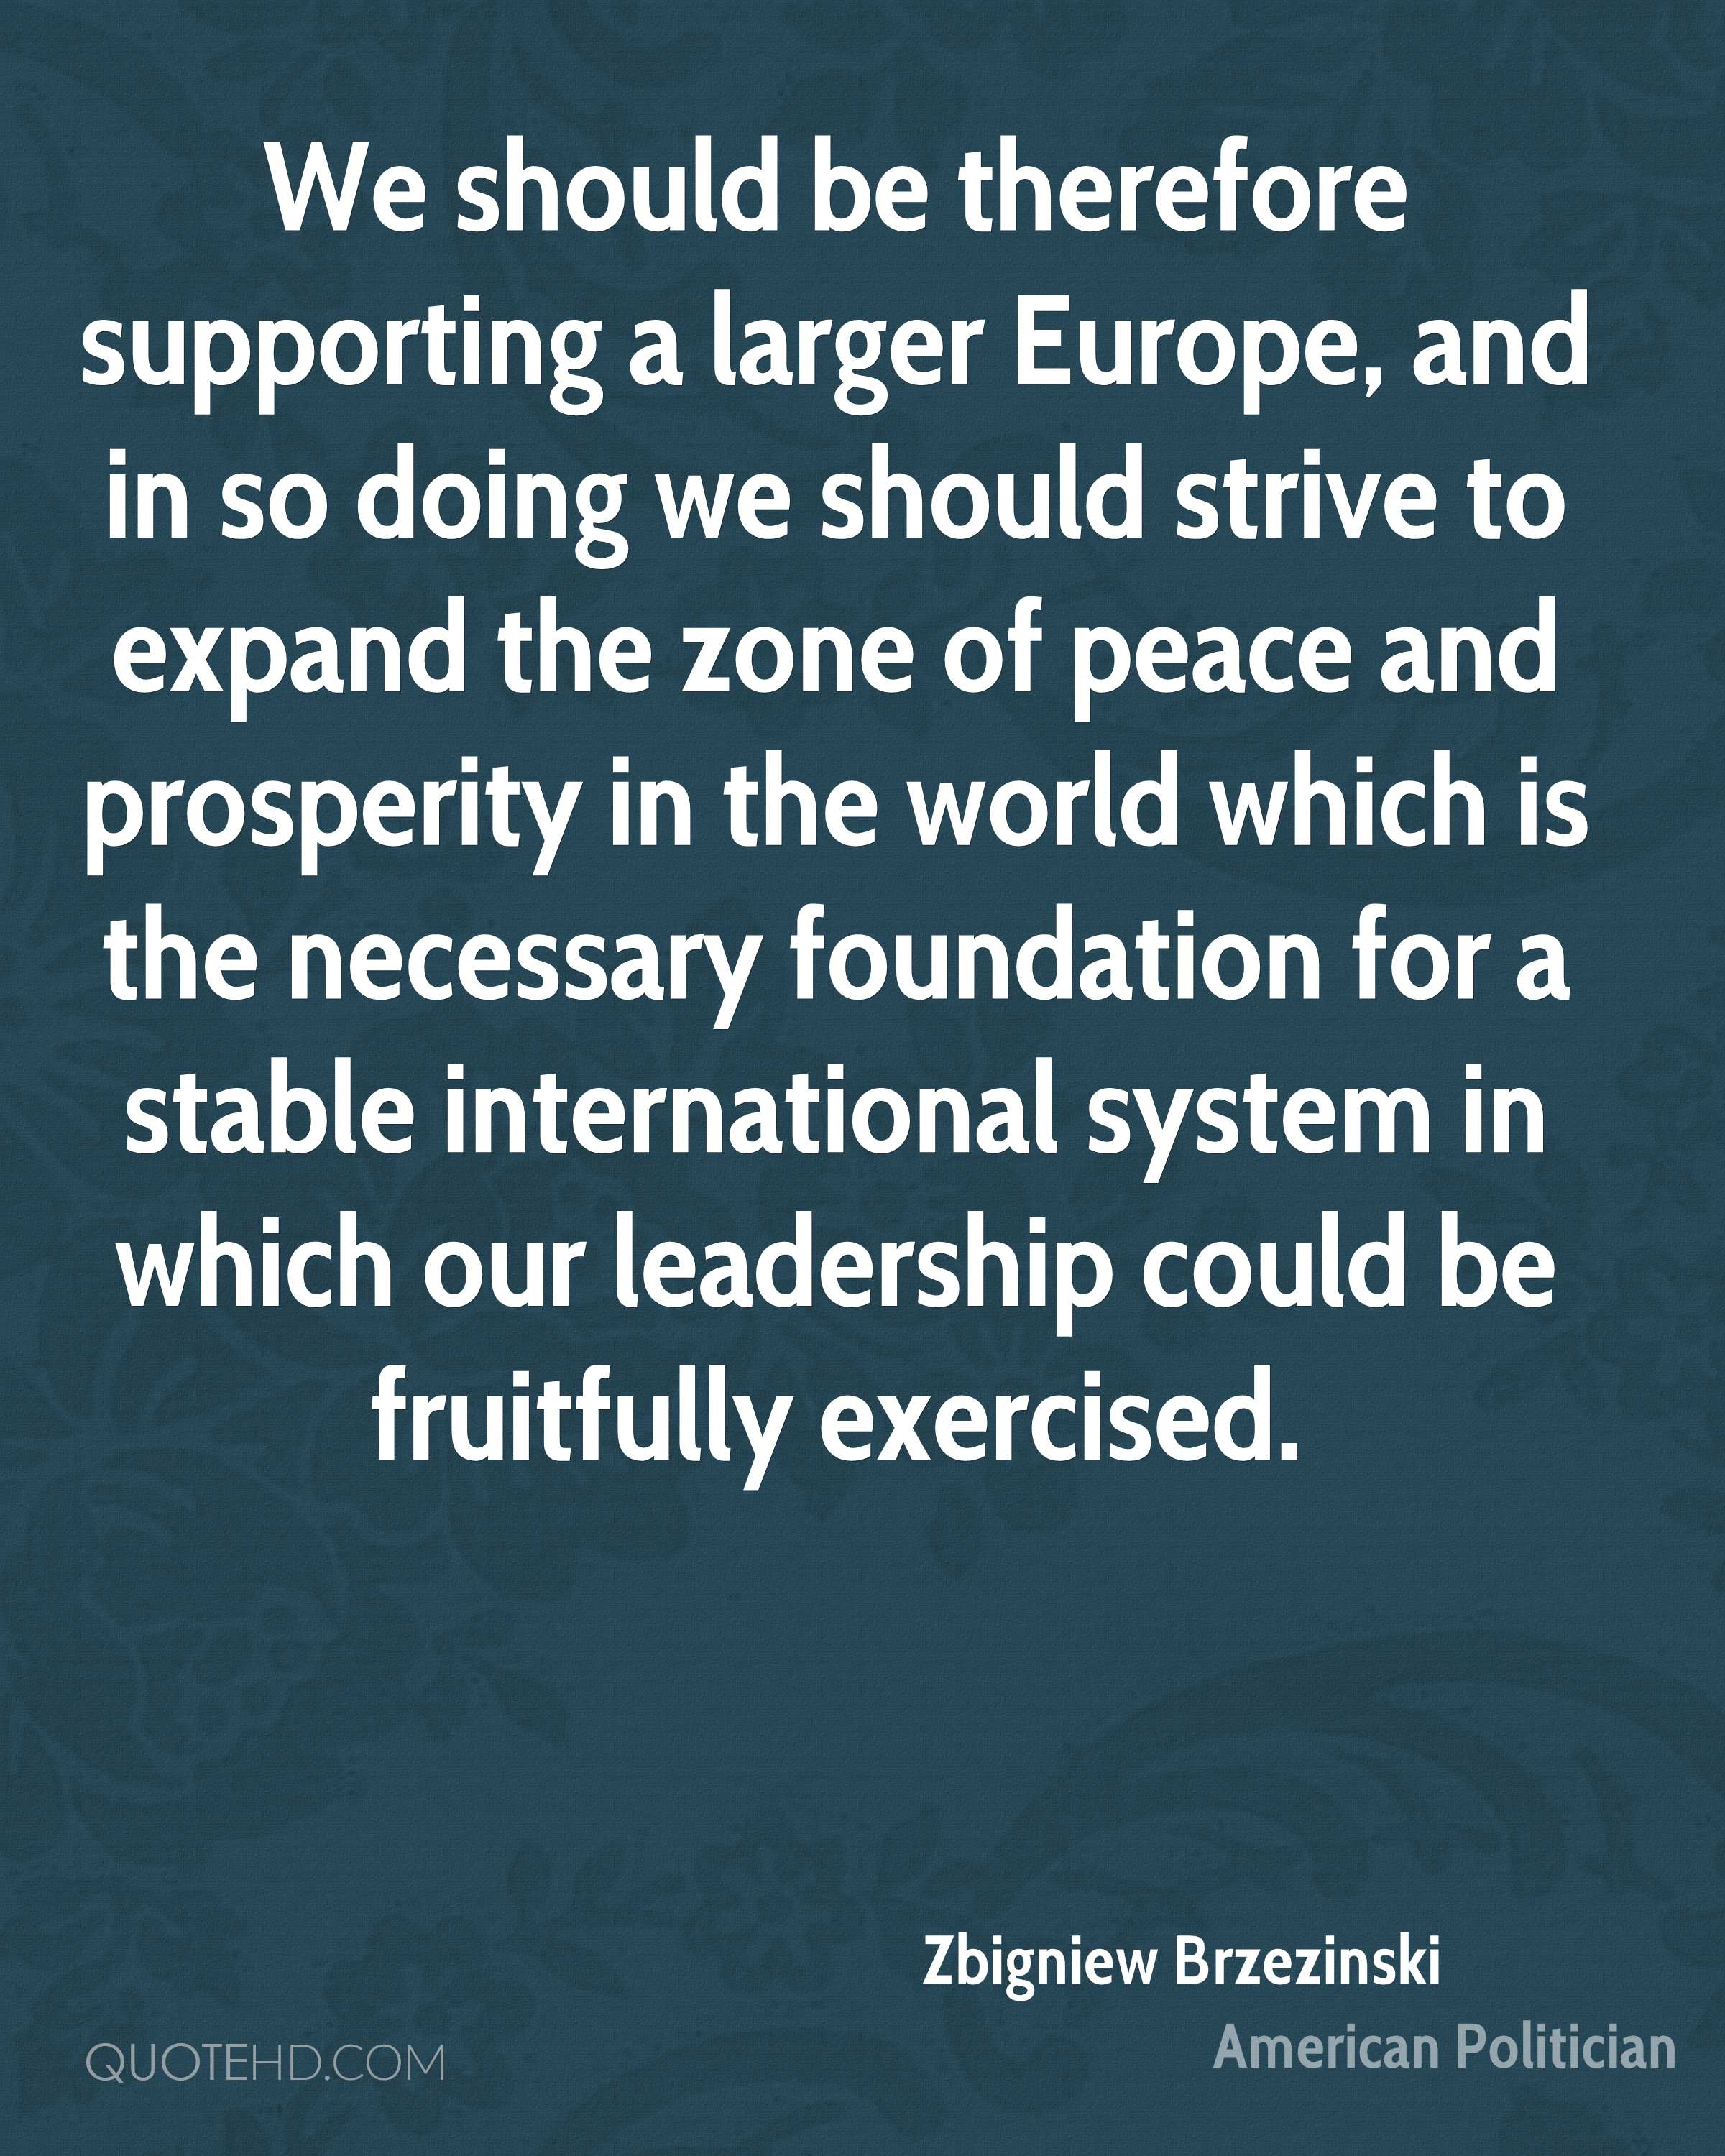 We should be therefore supporting a larger Europe, and in so doing we should strive to expand the zone of peace and prosperity in the world which is the necessary foundation for a stable international system in which our leadership could be fruitfully exercised.